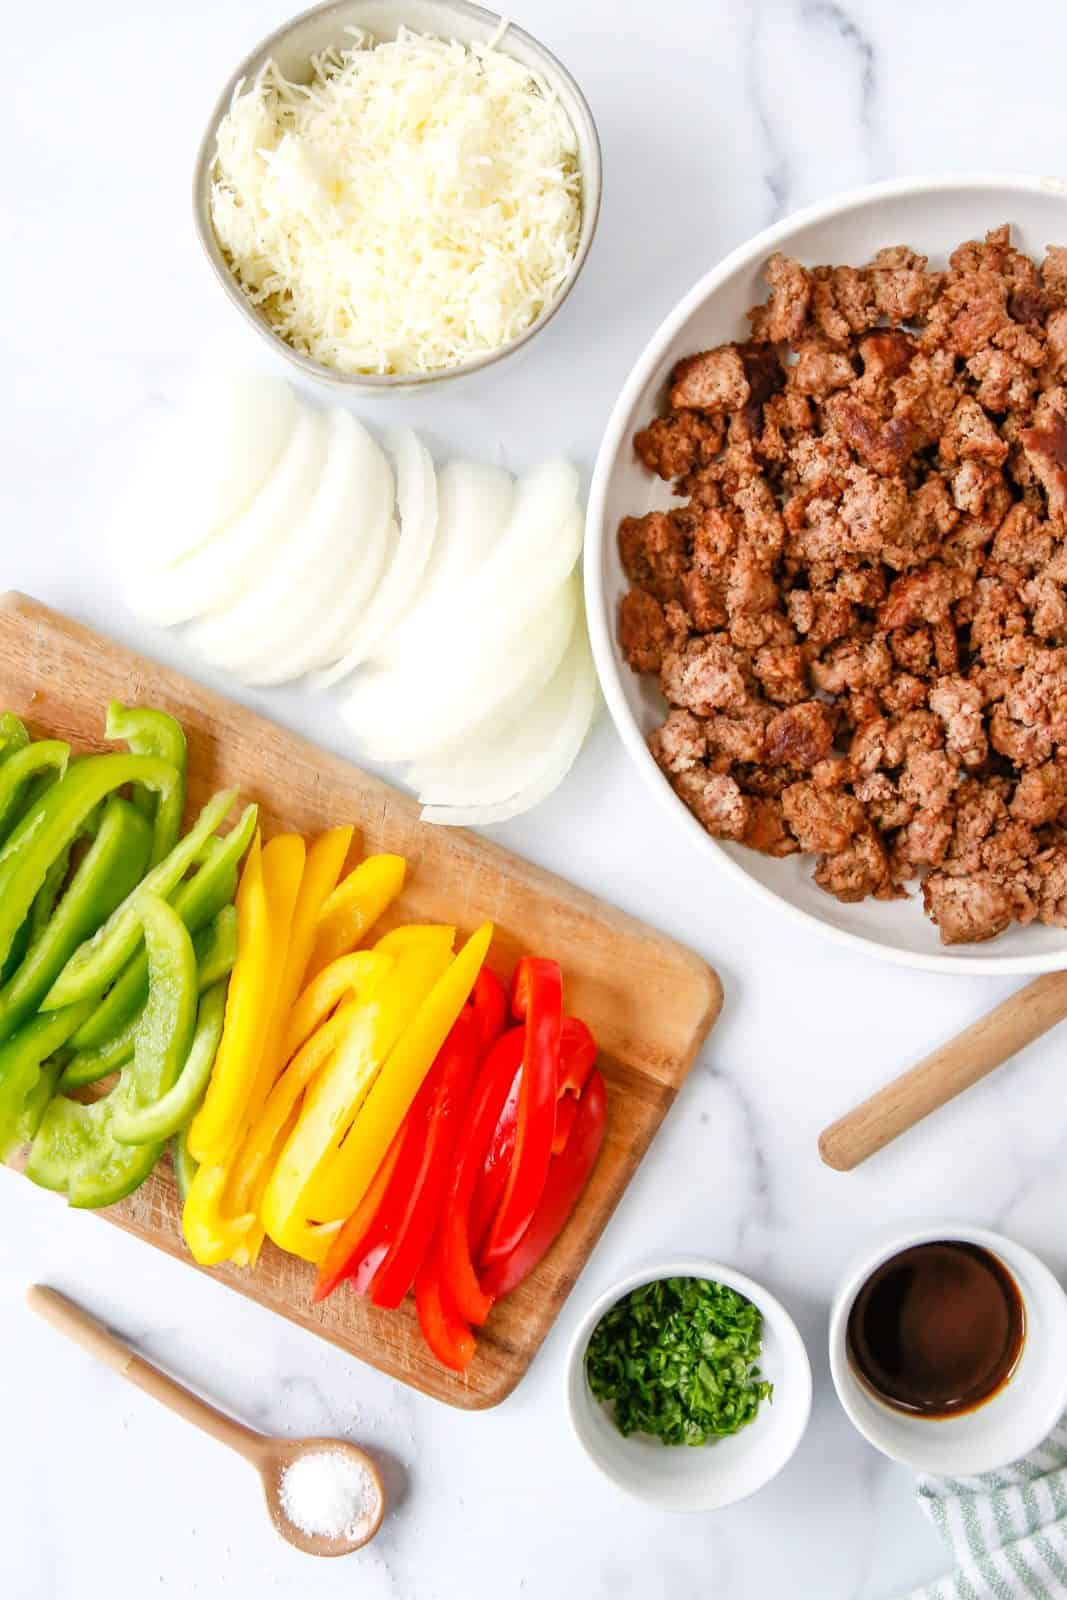 Ingredients needed: ground beef, butter, yellow onion, green bell pepper, red bell pepper, yellow bell pepper, beef broth, worcestershire sauce, garlic powder, salt, pepper, provolone or mozzarella cheese and minced parsley.